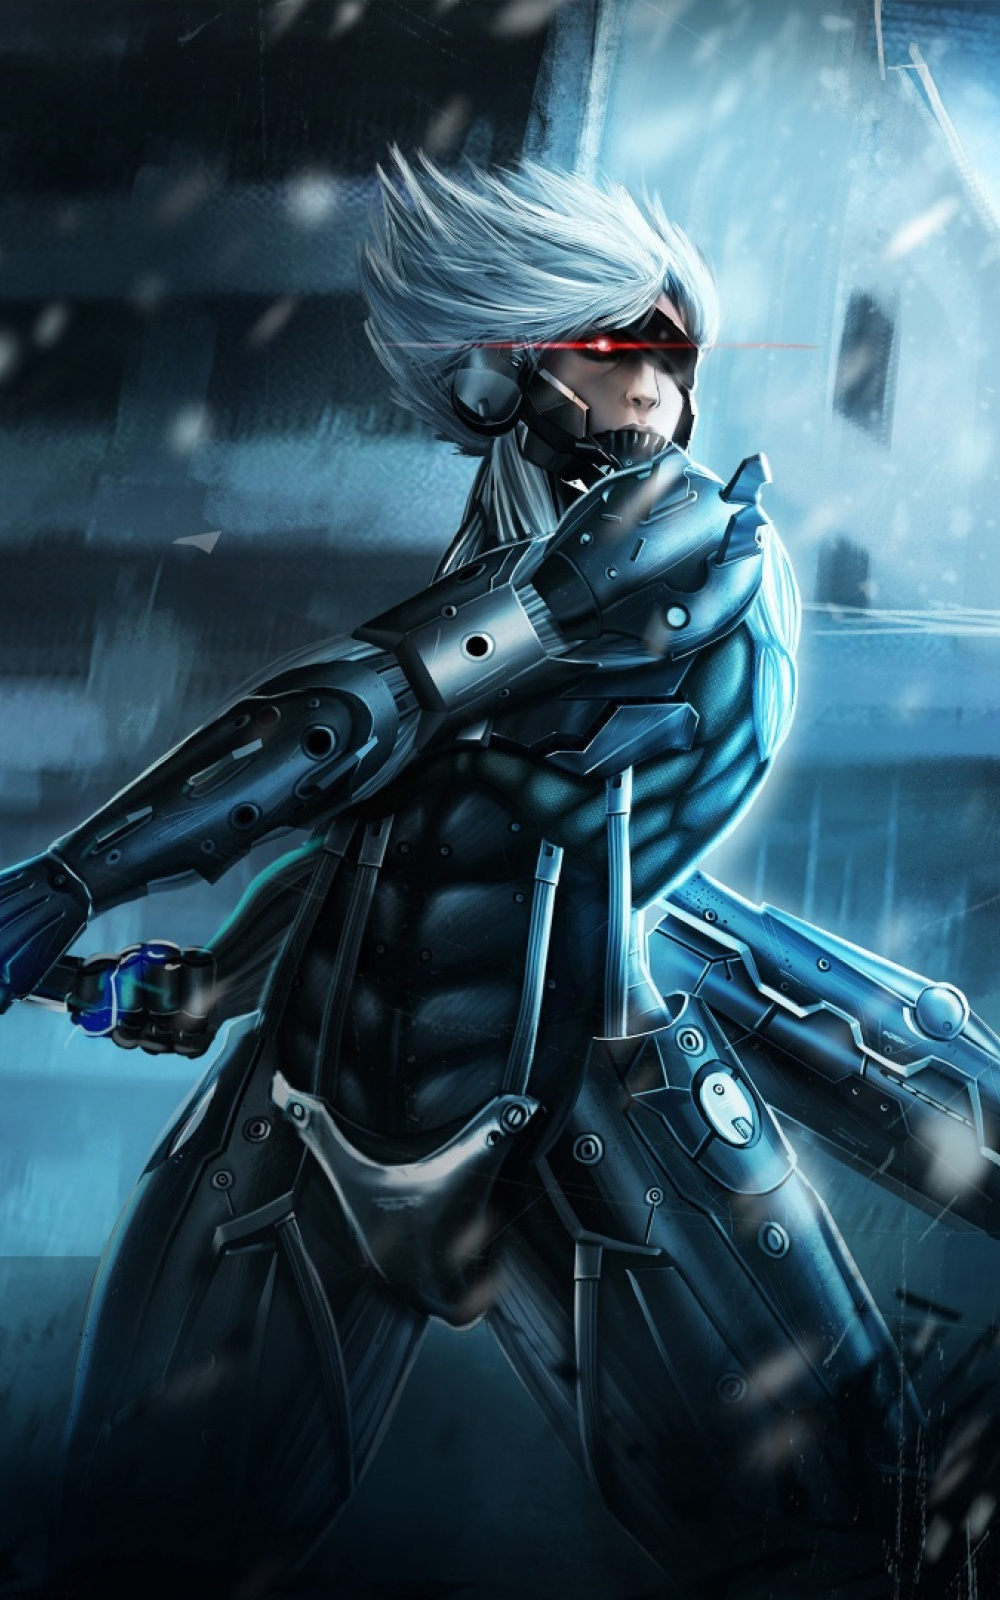 metal gear rising raiden mobile wallpaper - mobiles wall